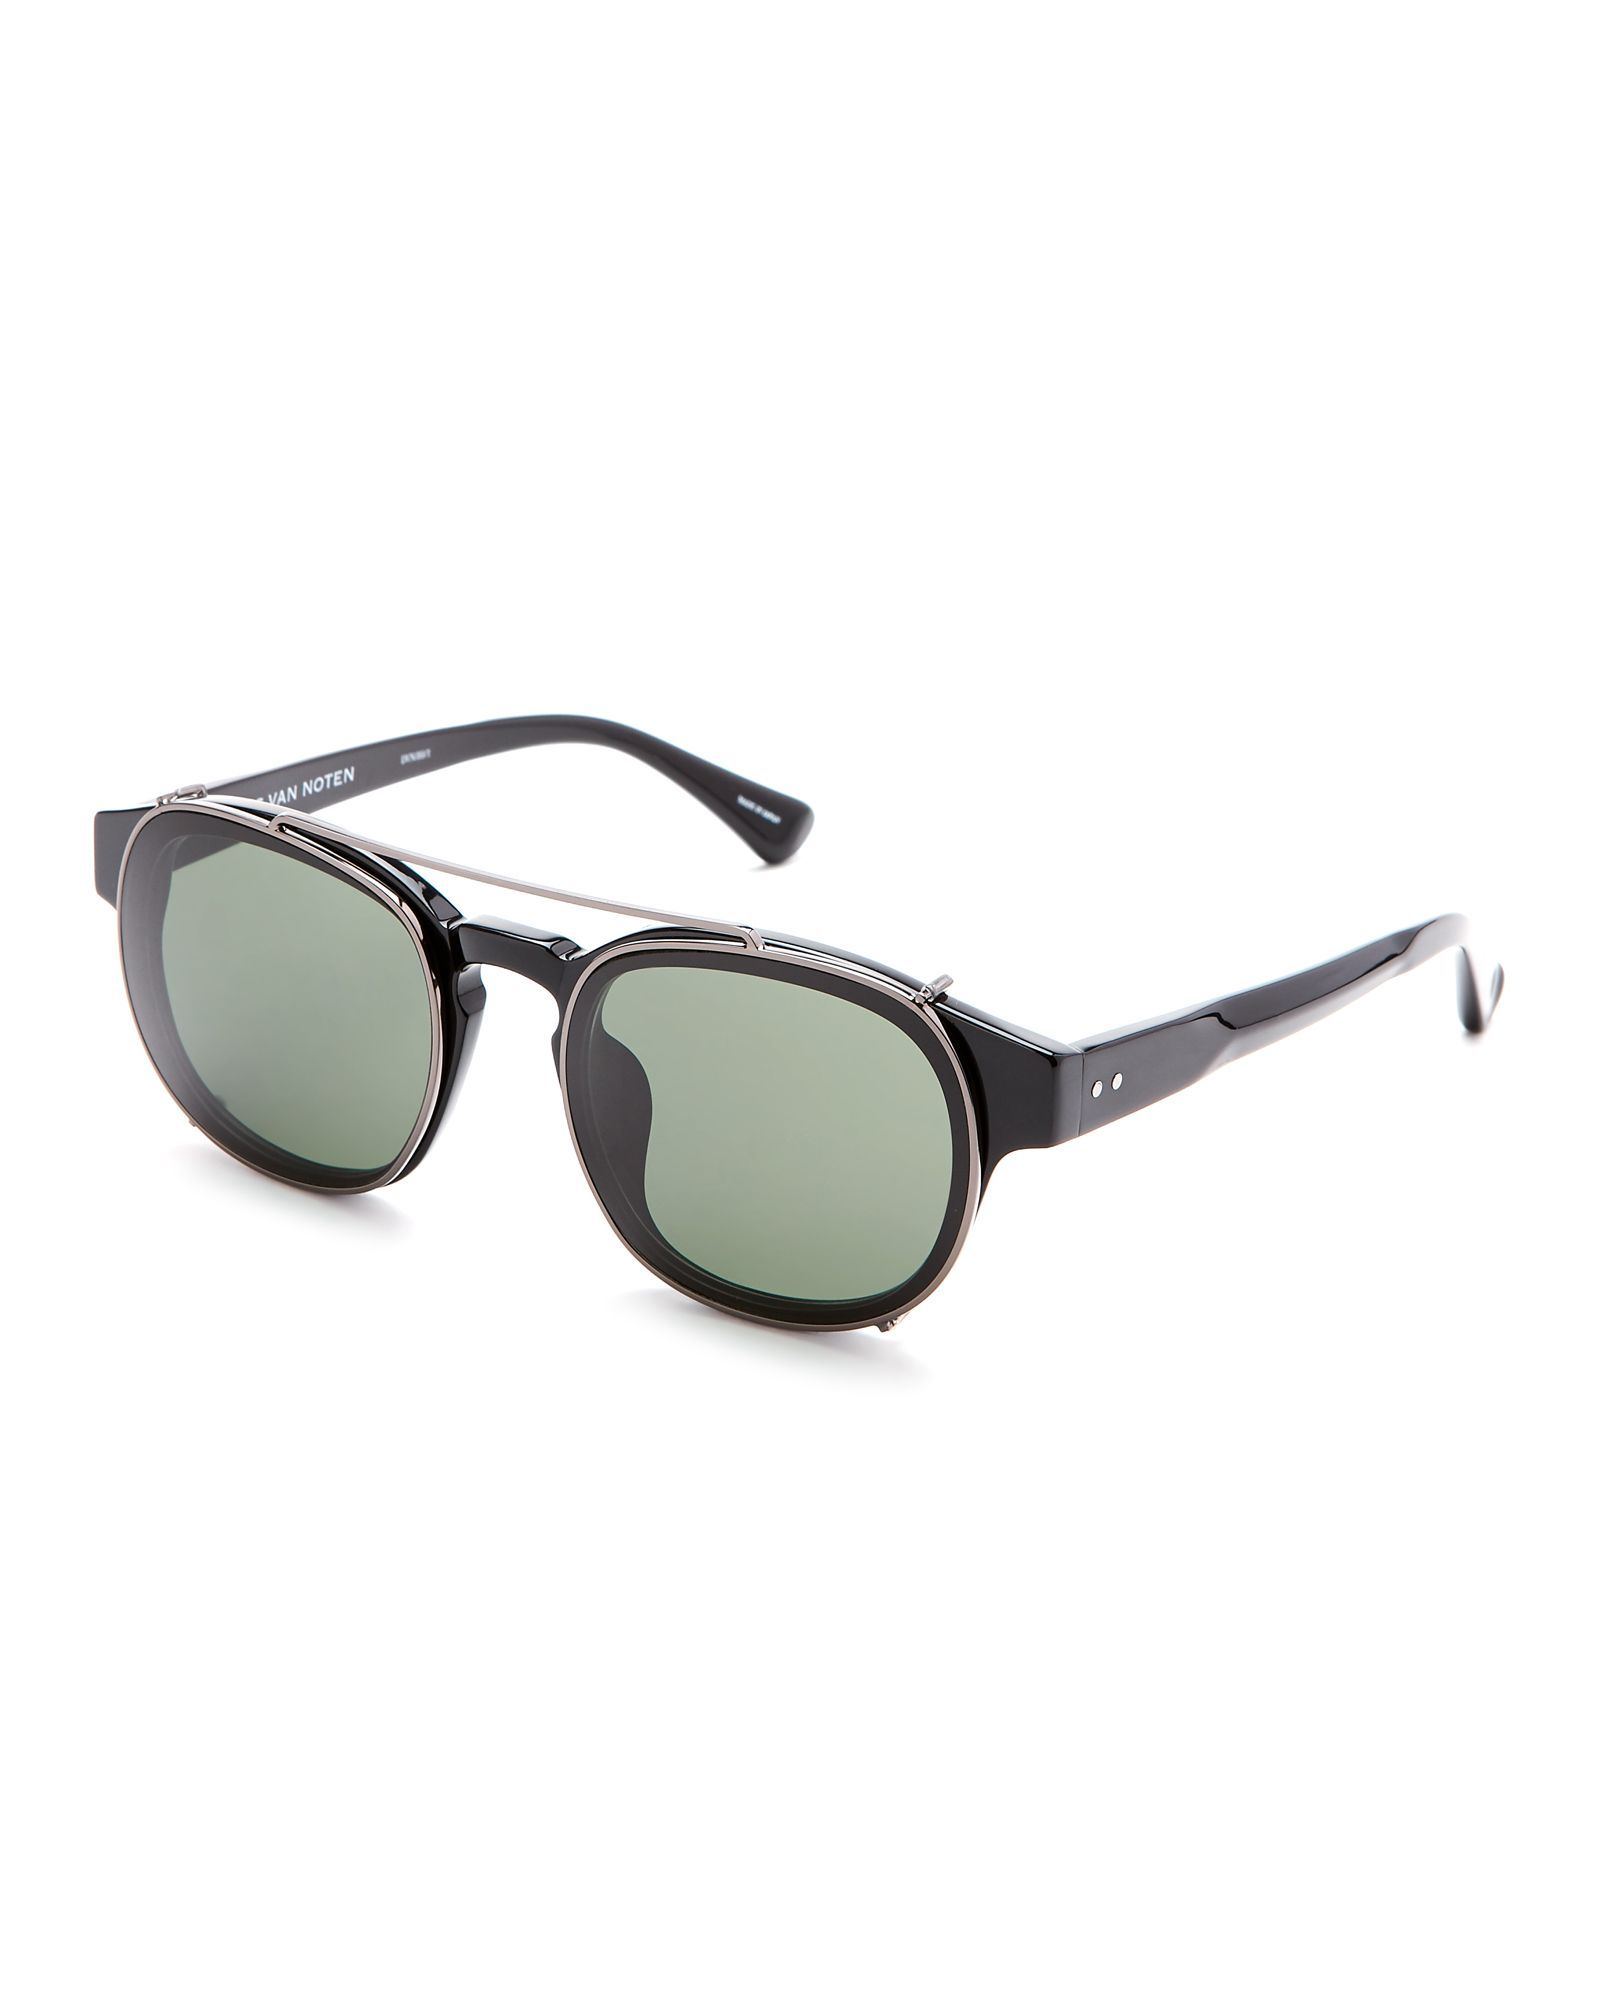 Dries Van Noten X Linda Farrow Black DVN80 Round Clip-On Sunglasses